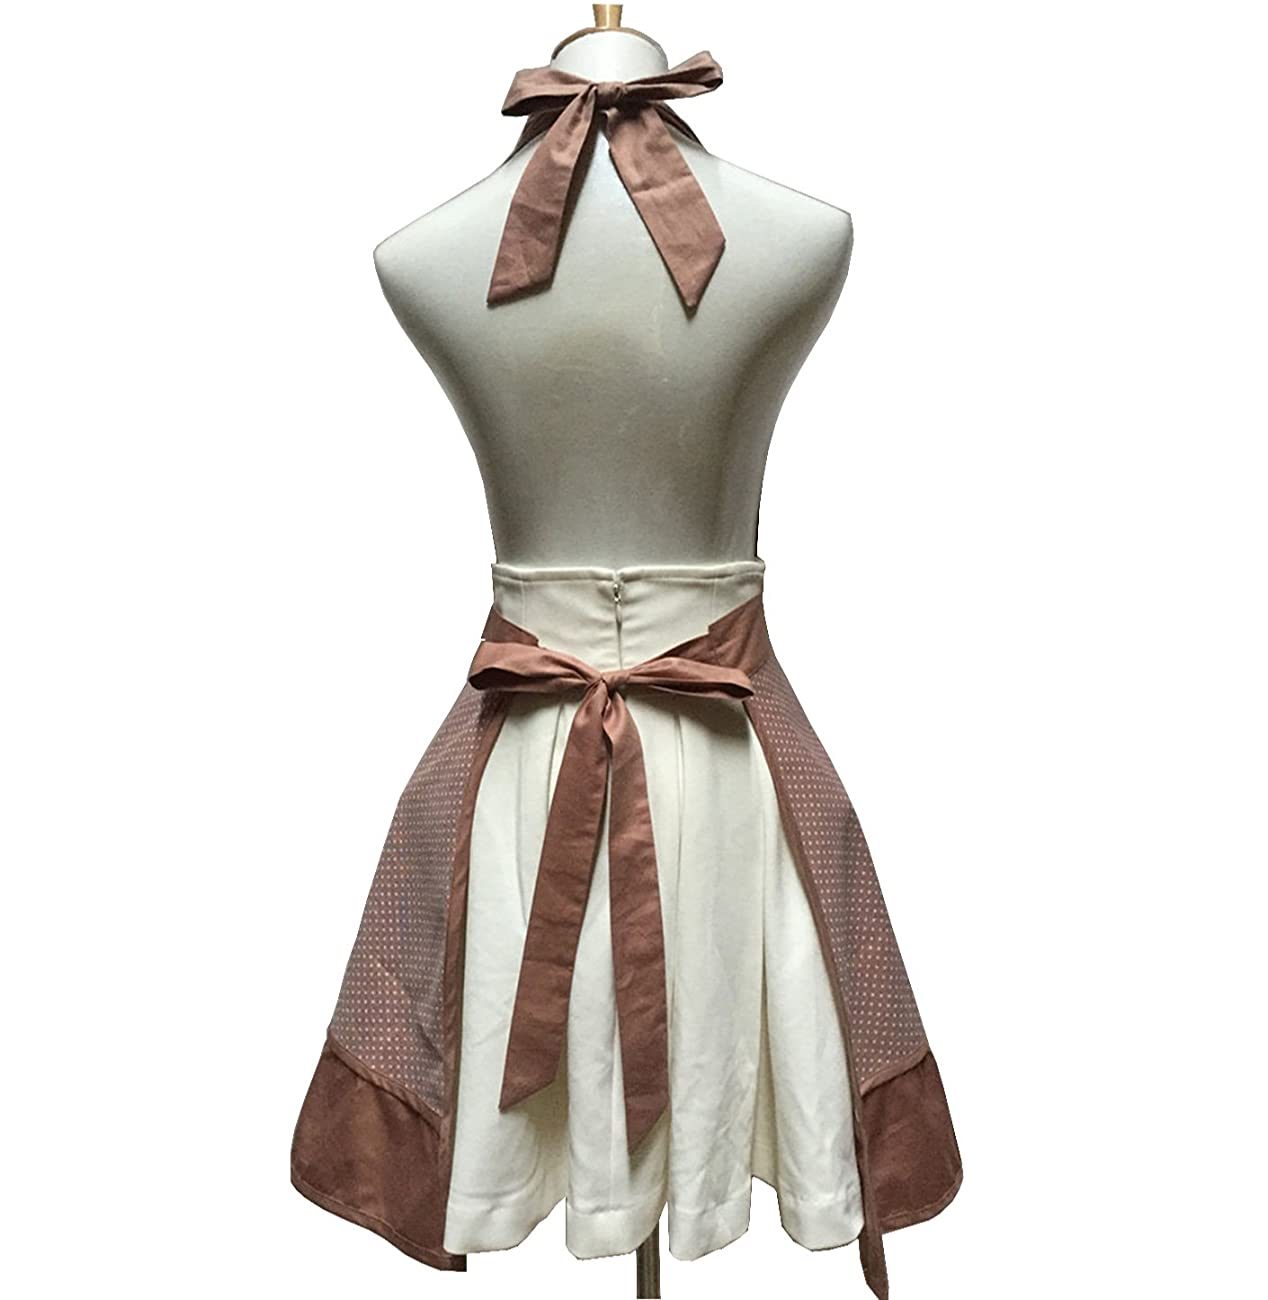 Lovely Sweetheart Retro Kitchen Aprons Woman Girl Cotton Cooking Salon Pinafore Vintage Apron Dress with Pocket,Brown 2